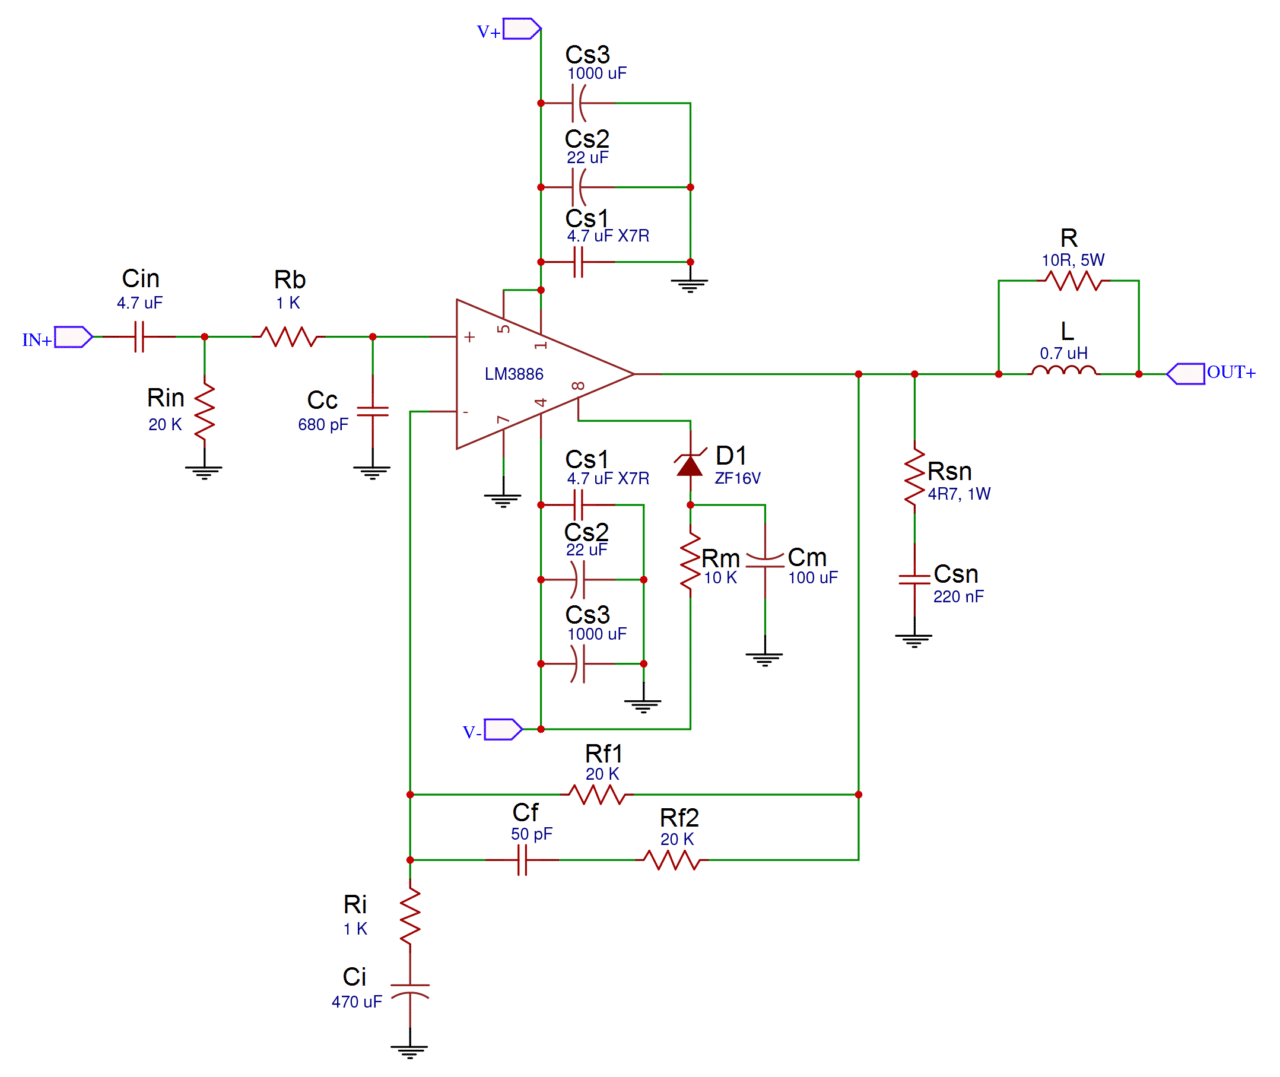 Classd Amplifier Circuit Simulator A Complete Guide To Design And Build Hi Fi Lm3886 Ill Be Using The Schematic Below Its Basically Same As One In Datasheet But With Optional Stability Components Included